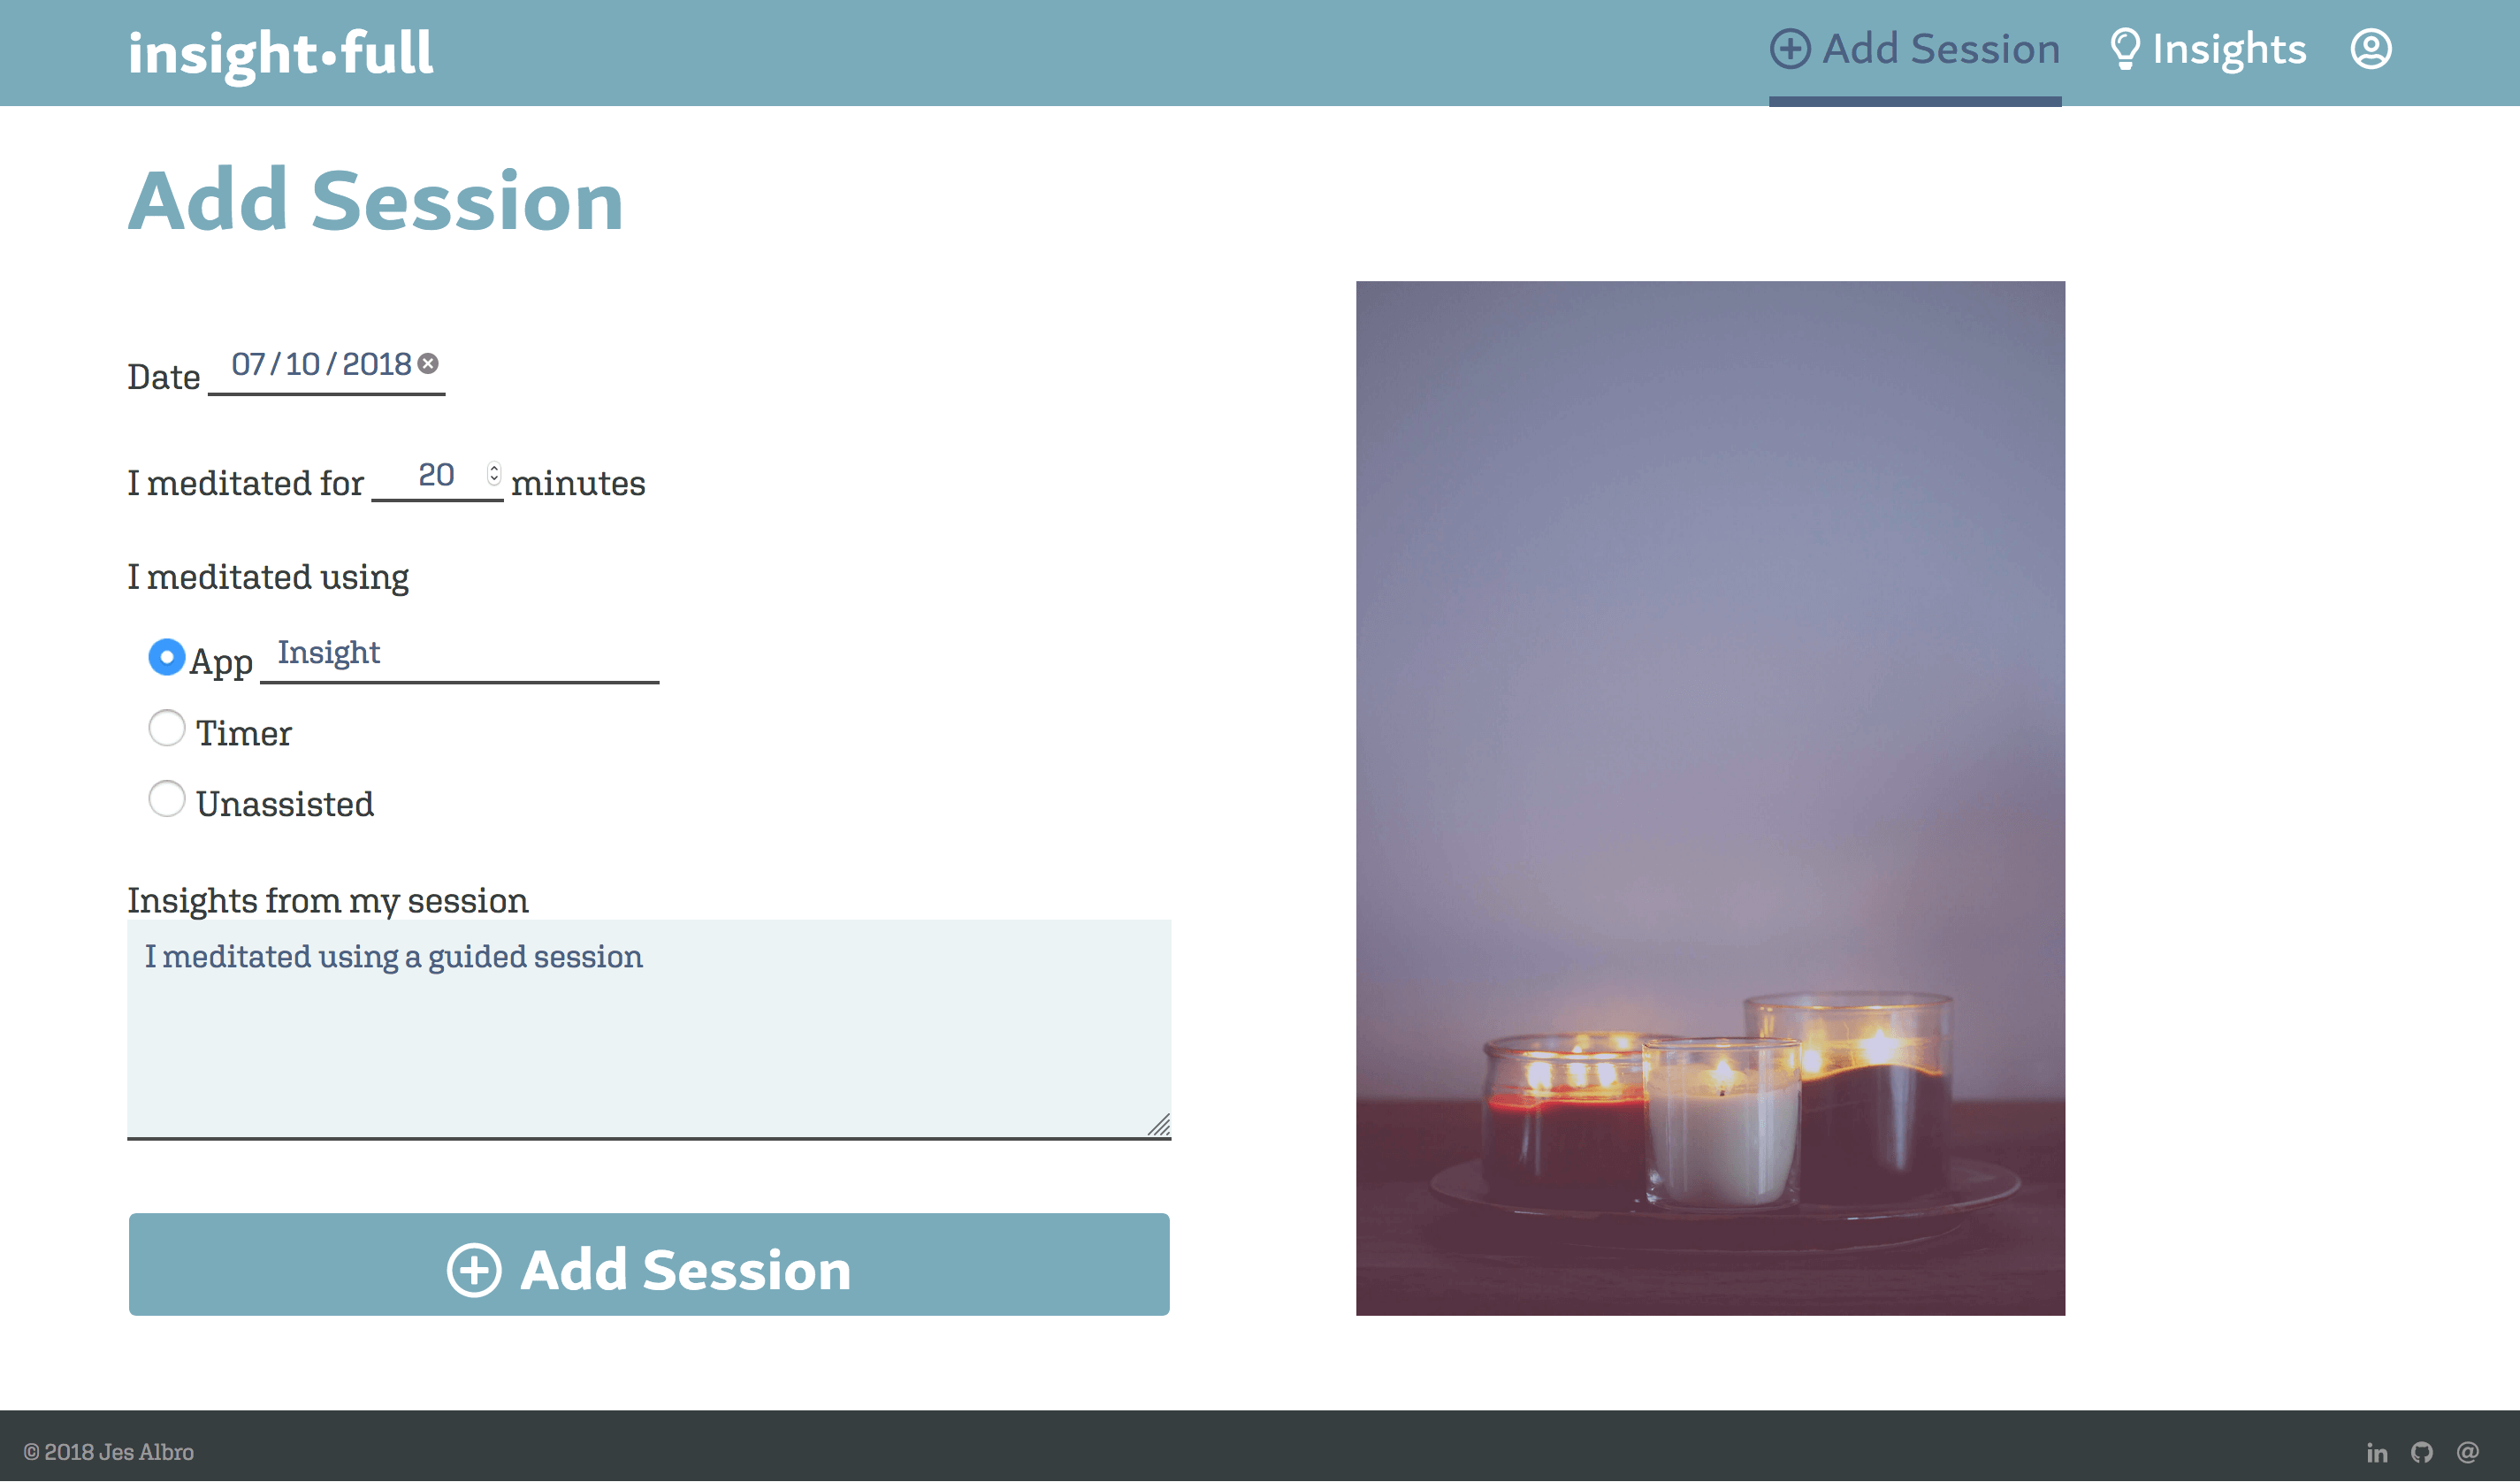 Add Session Page